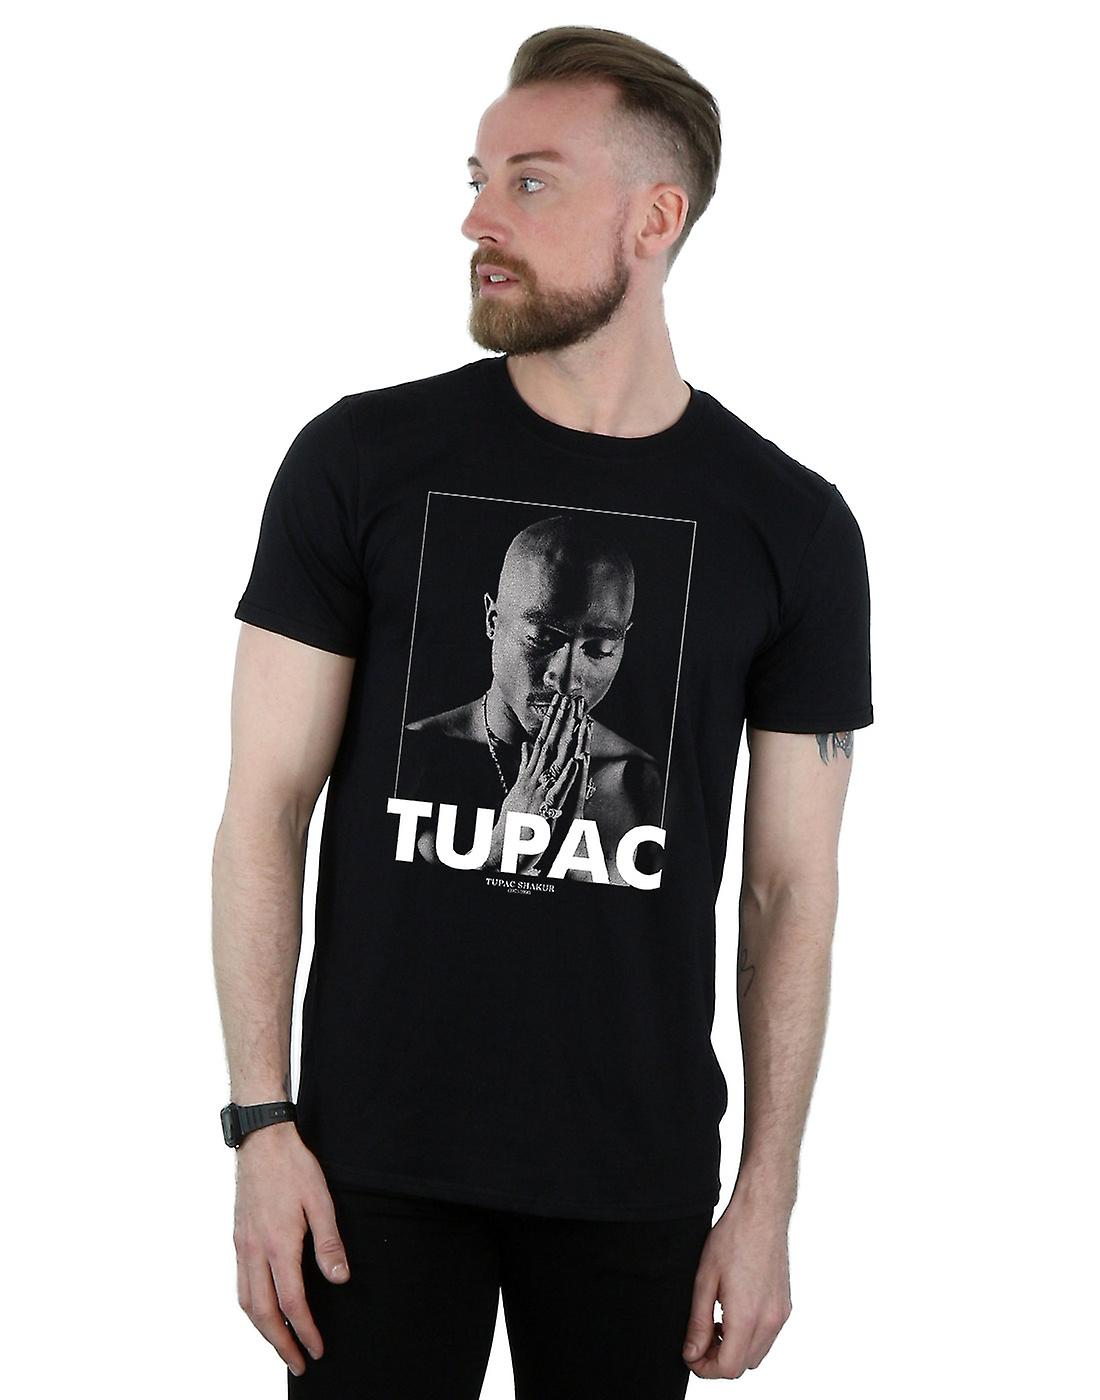 You searched for: tupac shirt! Etsy is the home to thousands of handmade, vintage, and one-of-a-kind products and gifts related to your search. No matter what you're looking for or where you are in the world, our global marketplace of sellers can help you find unique and affordable options. Let's get started!